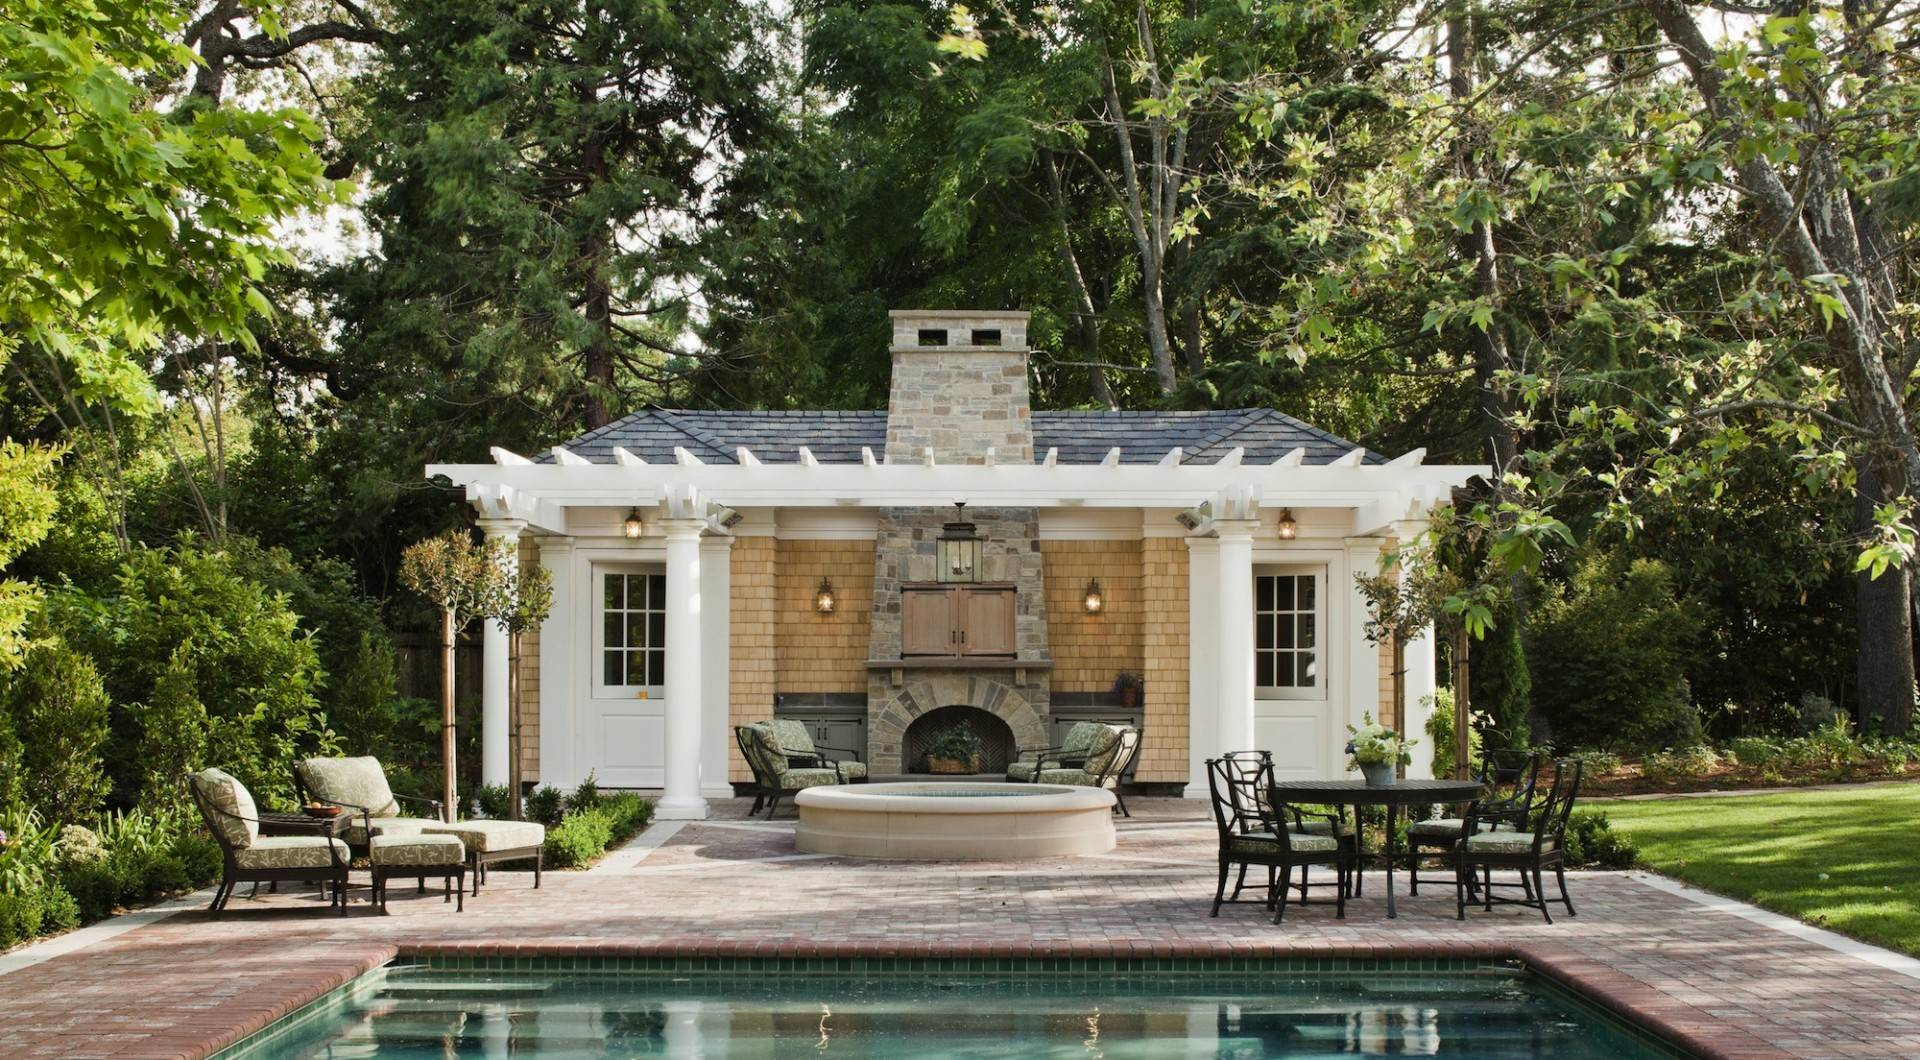 French ountry Style Kitchen House Victorian Pool - House Plans ... - ^